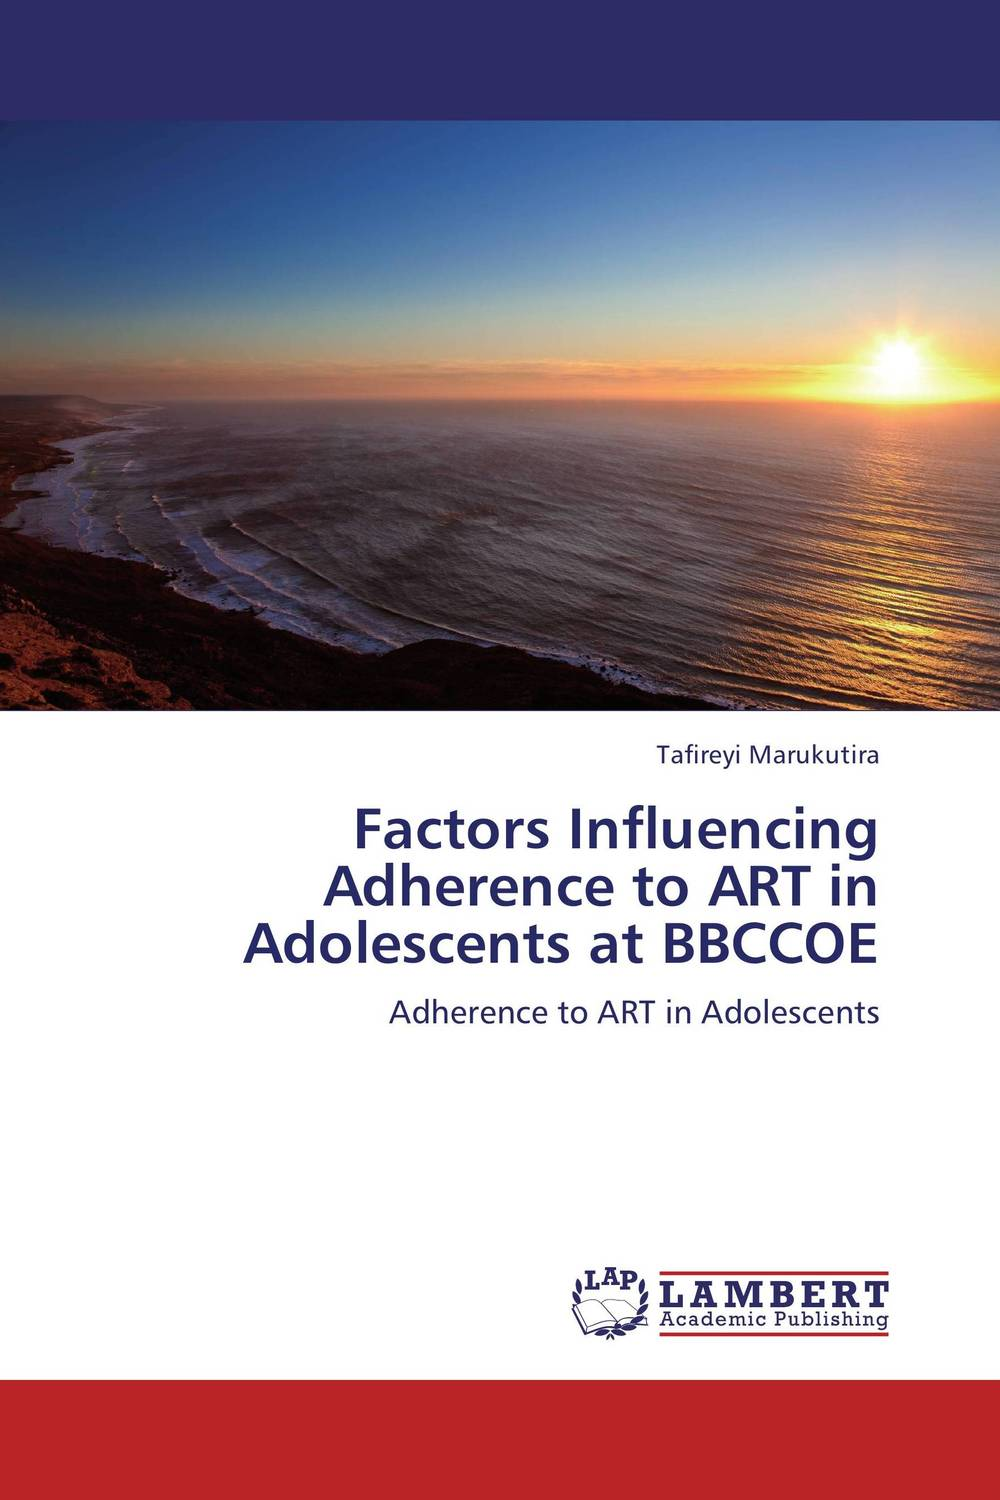 Factors Influencing Adherence to ART in Adolescents at BBCCOE  david butali namasaka factors influencing deviant socio cultural practices among adolescents